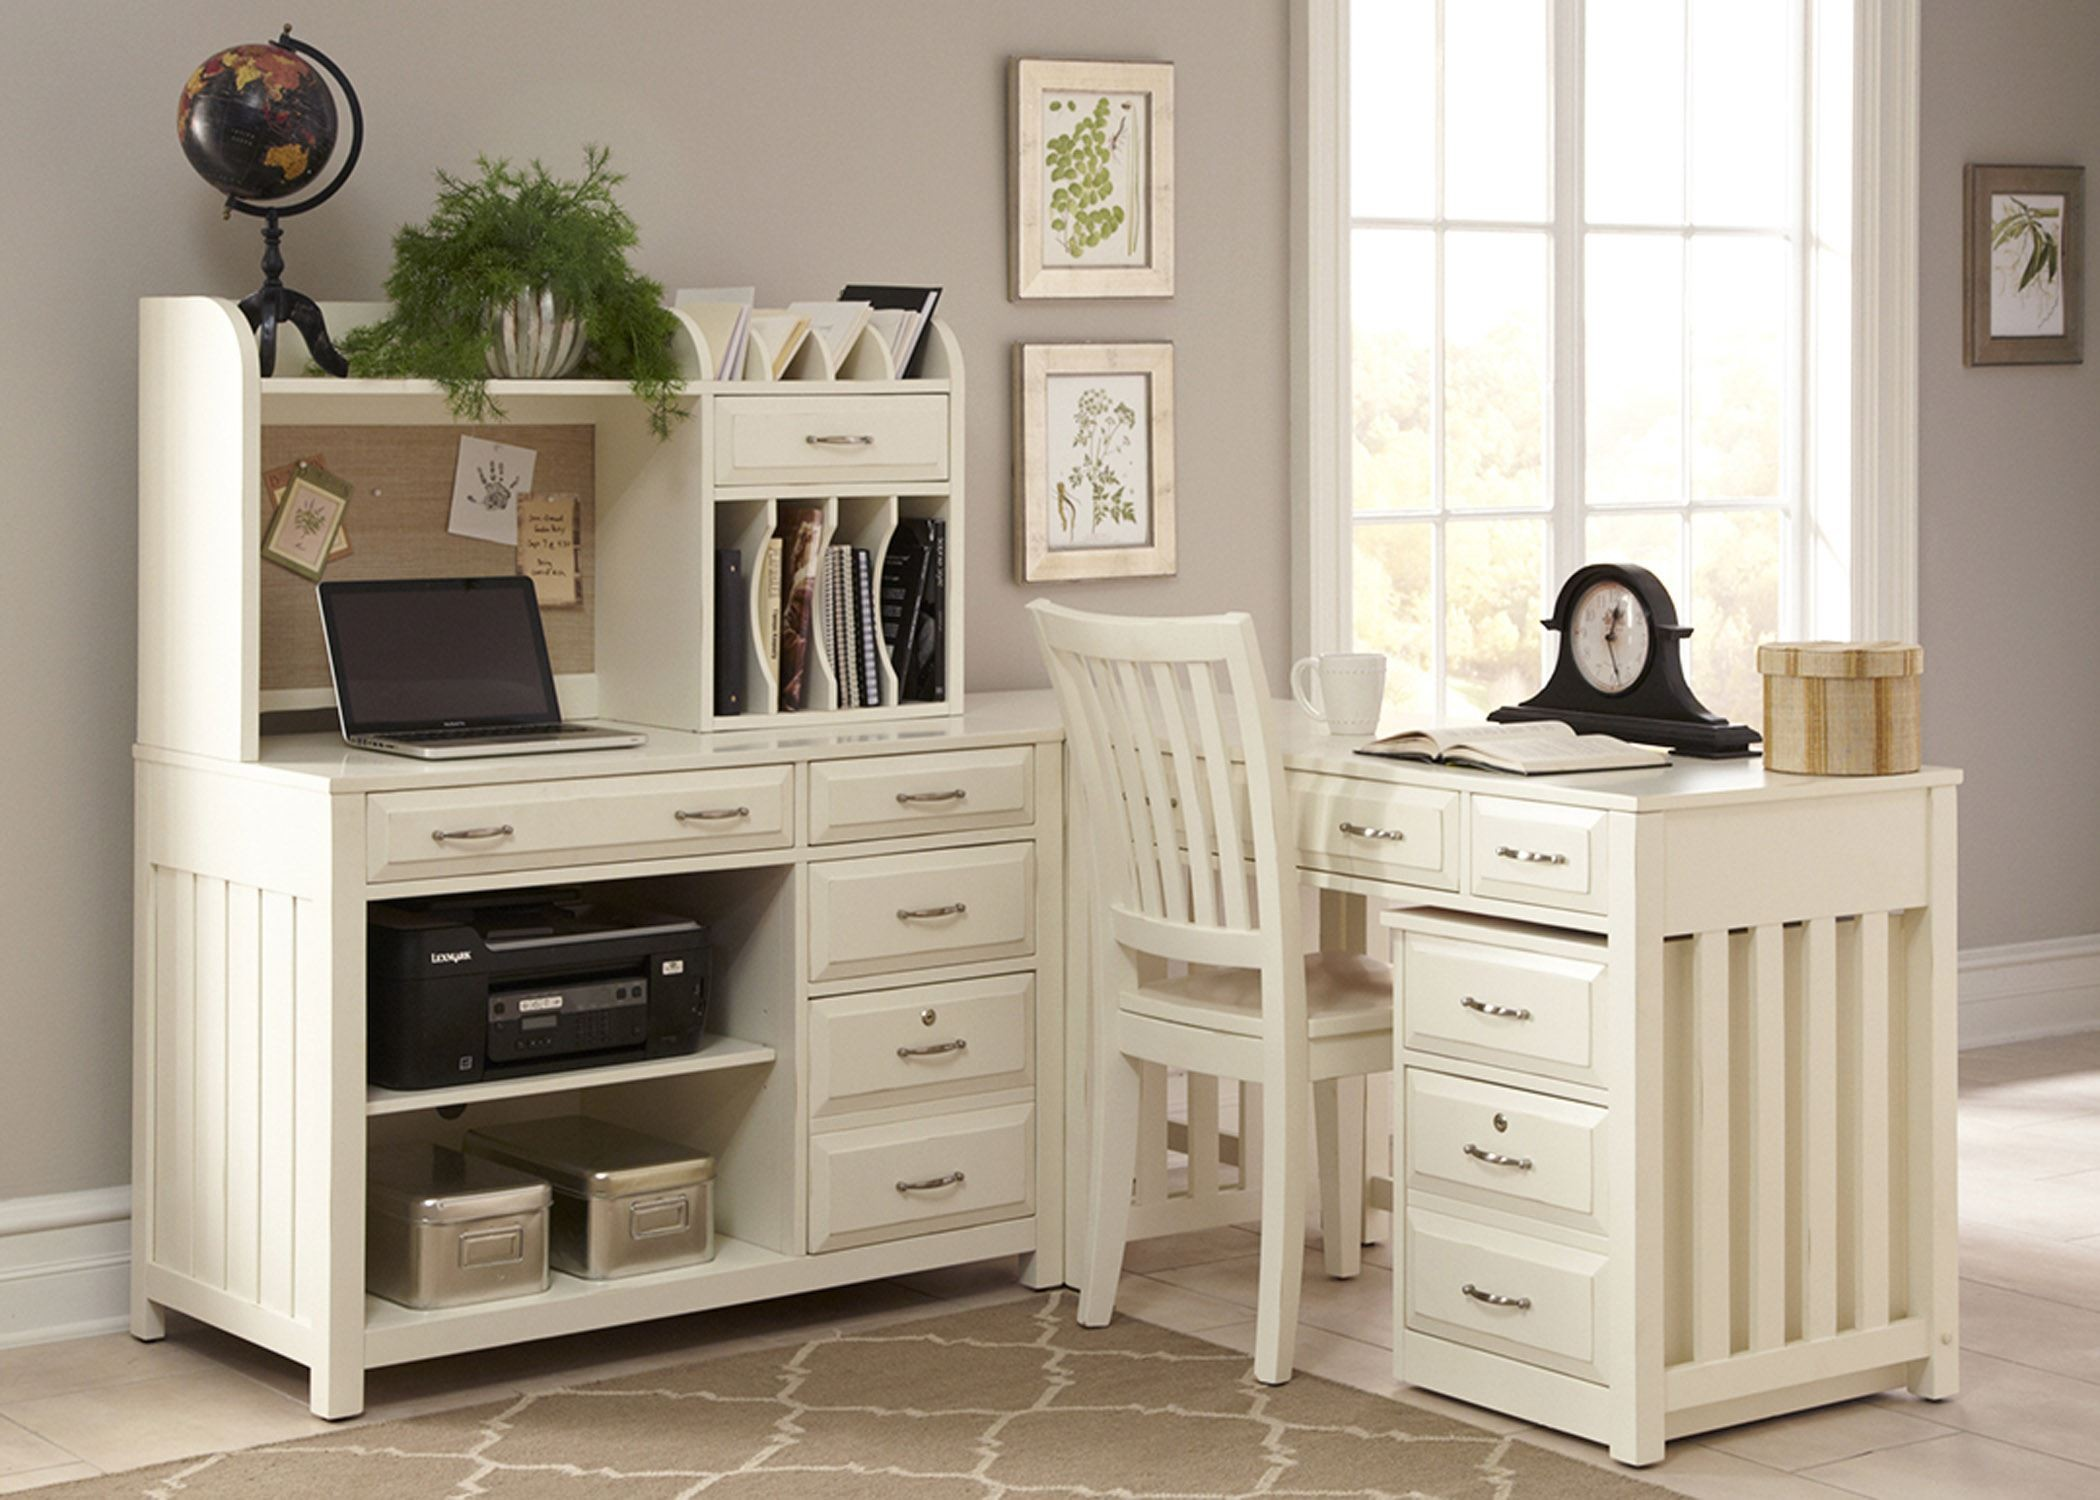 Hampton bay white home office set from liberty coleman furniture - Home office furniture set ...